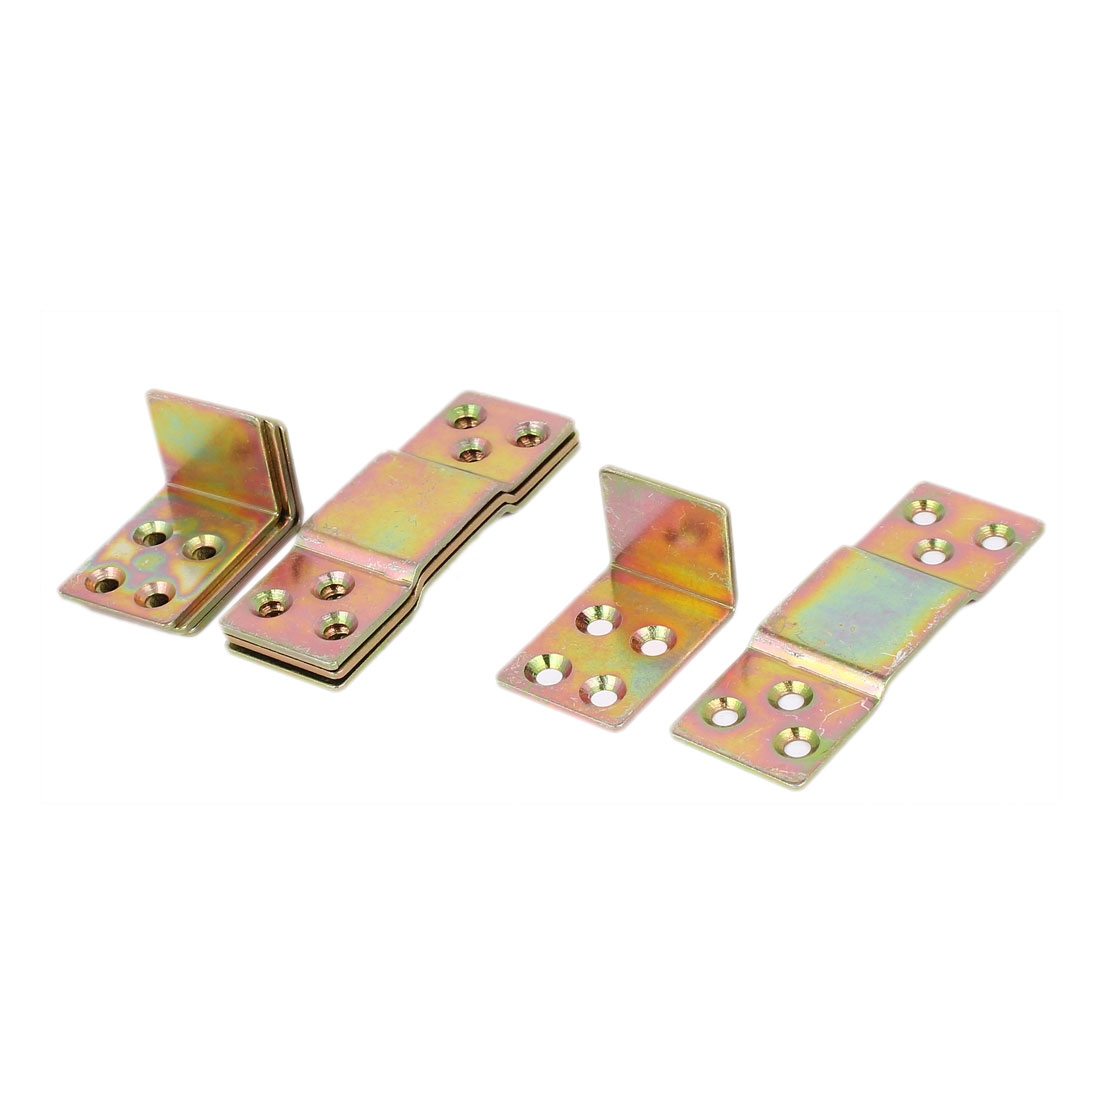 90mm x 40mm x 25mm Metal Bed Connection Hinge Furniture Buckle 4pcs